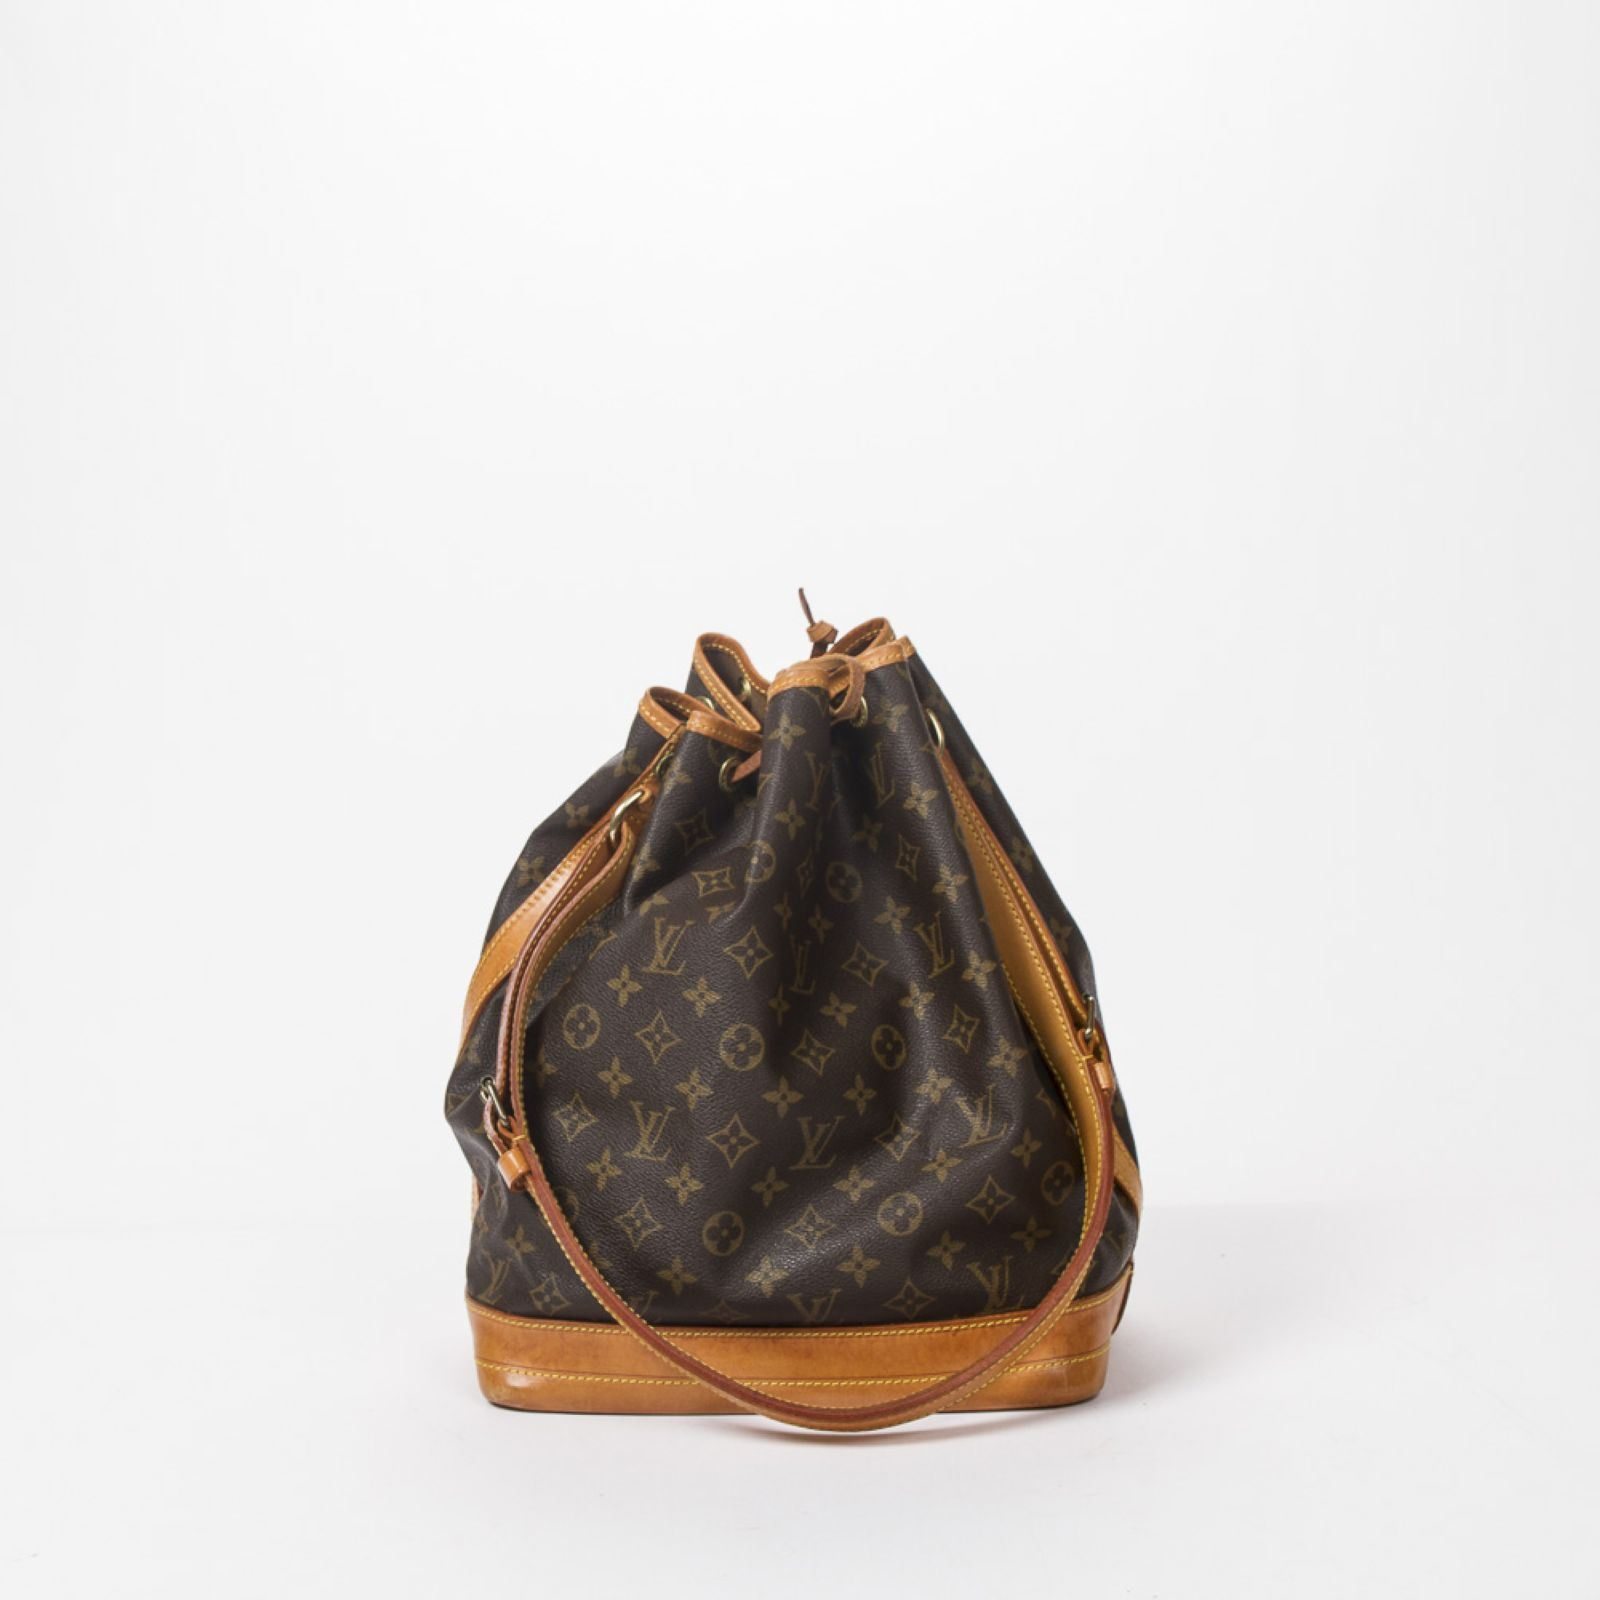 8 Reasons Louis Vuitton Monogram Bags - upursesforum.com